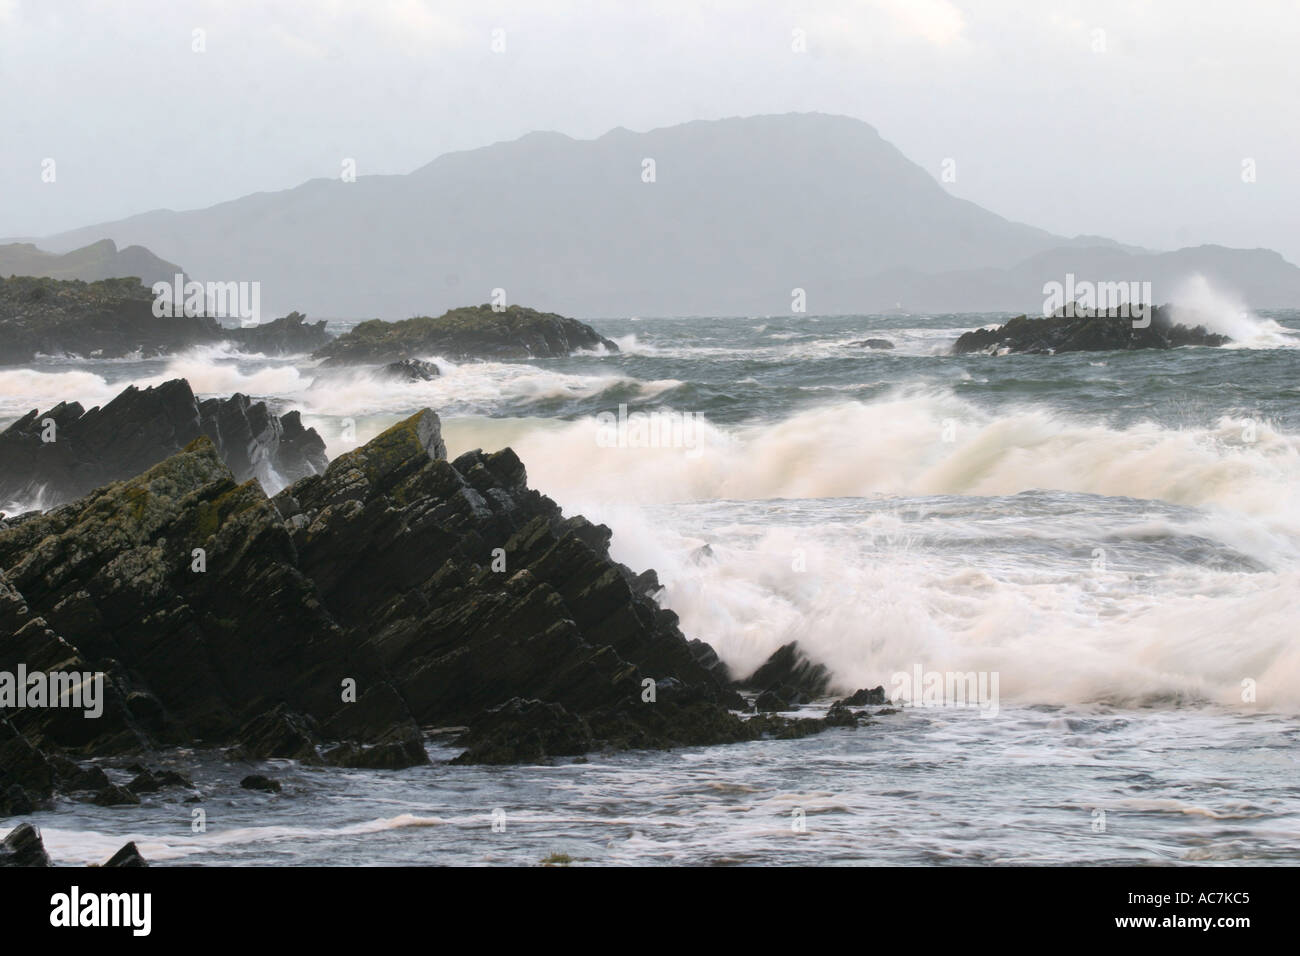 Hurricane waves crash into the rocky shore near Easdale,  Oban in January 2005 - Stock Image